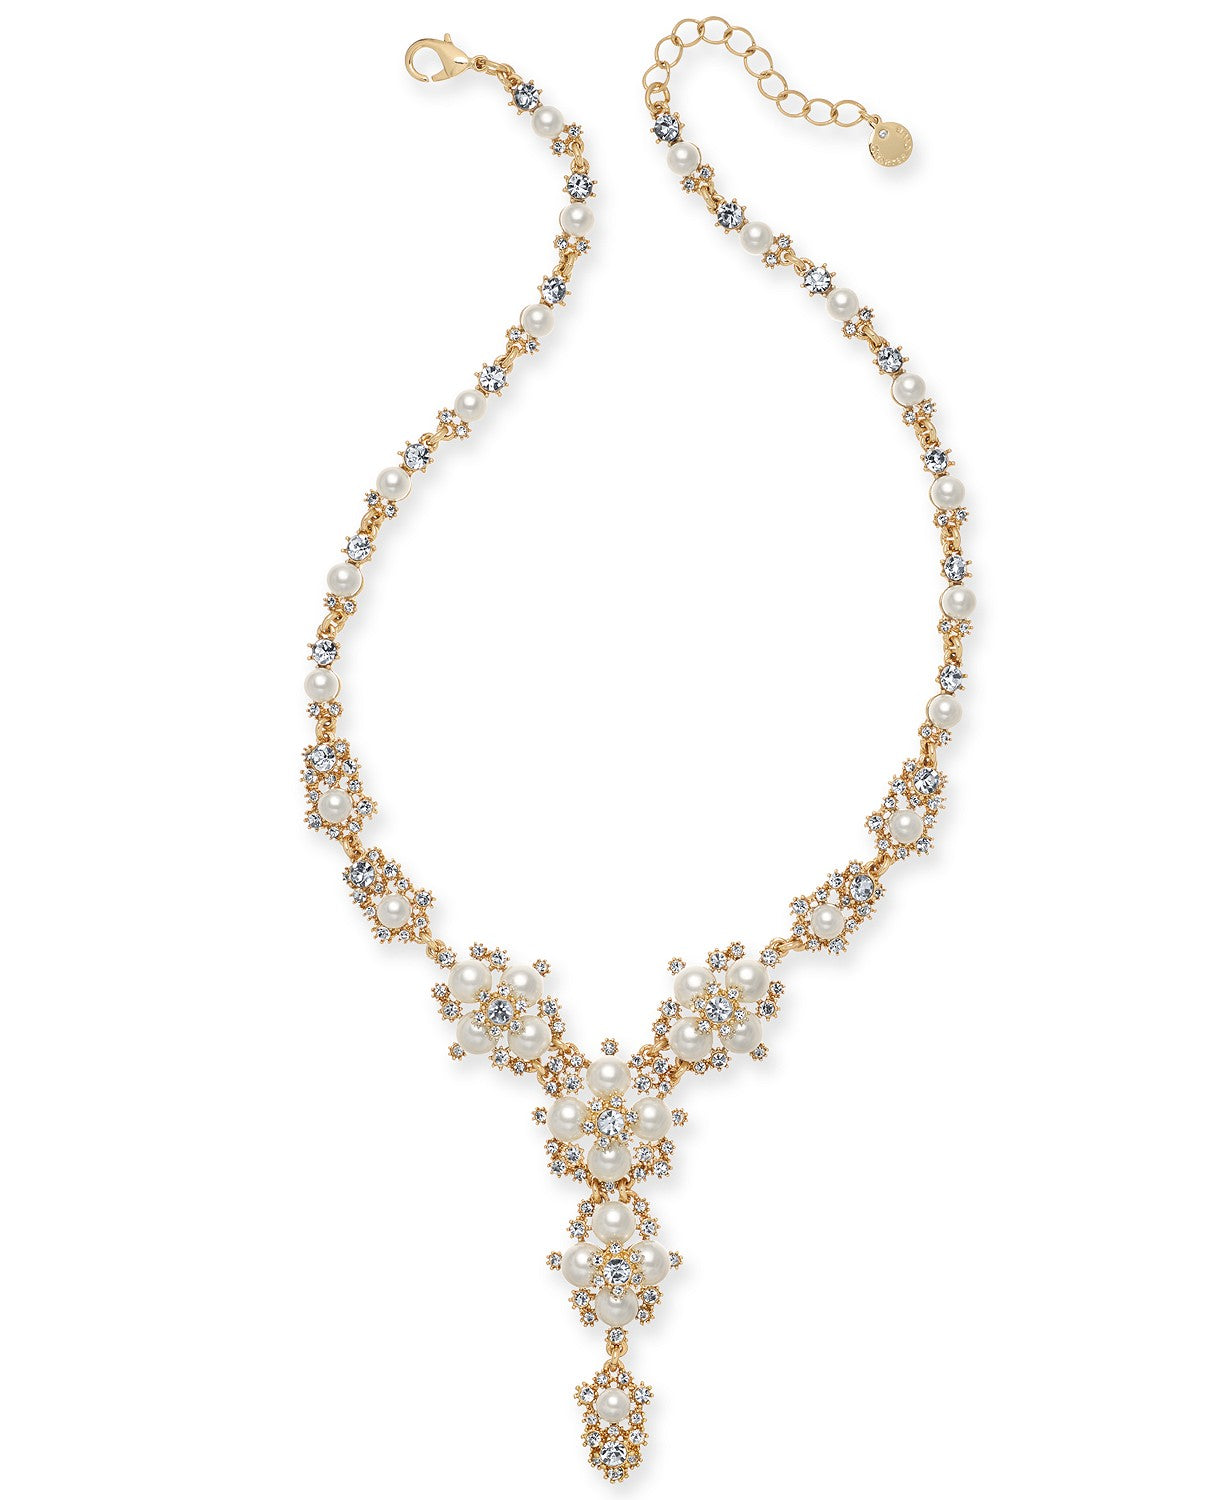 "Charter Club Gold-Tone Crystal & Imitation Pearl Lariat Necklace, 40"" + 2"" extender"